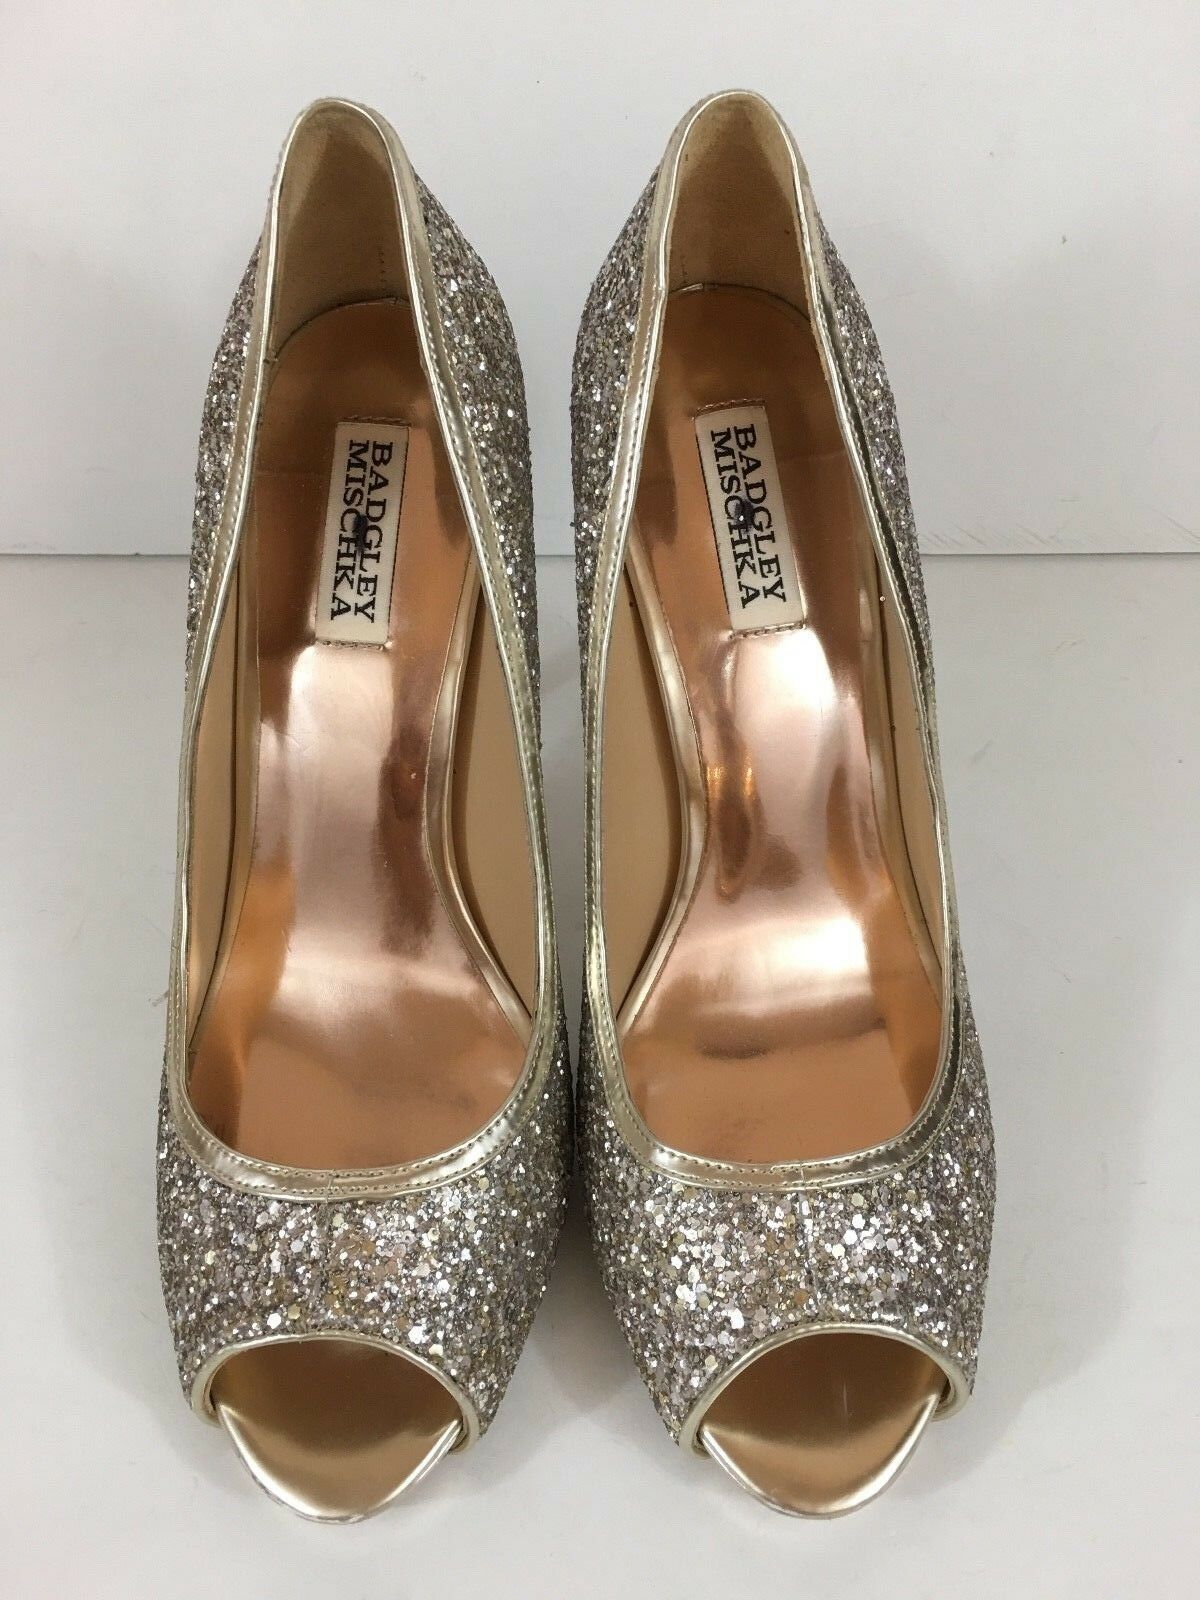 NEW BADGLEY MISCHKA GLITTER gold gold gold LEATHER  HEEL OPEN TOE PUMP SIZE 10  265 f0181b